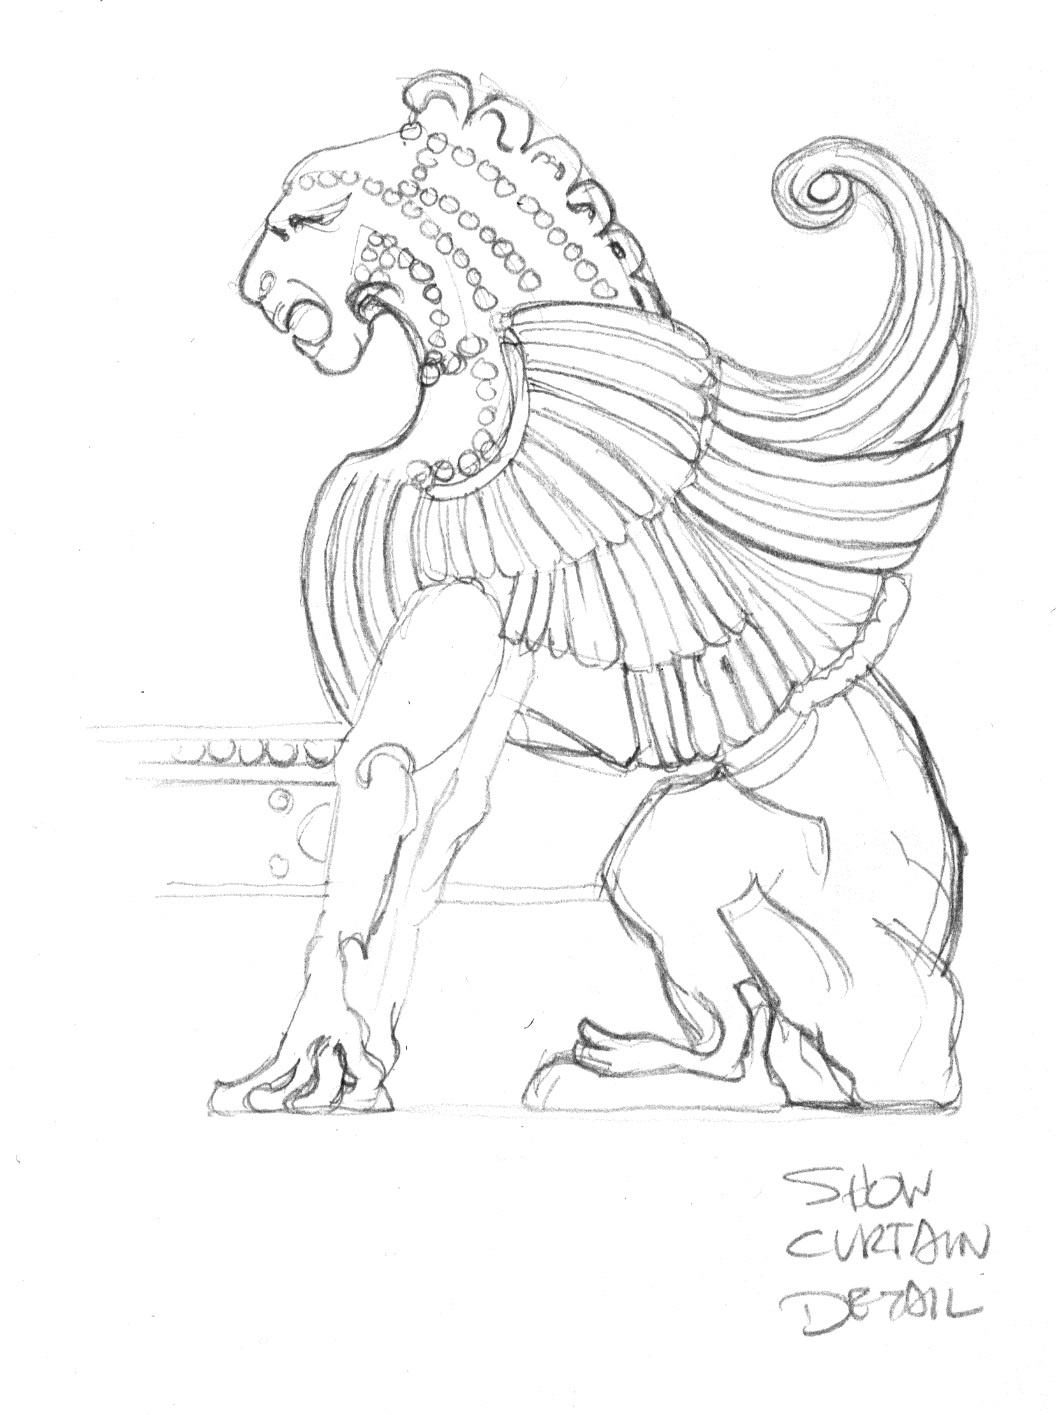 samson and delilah coloring pages - Samson Delilah Coloring Pages